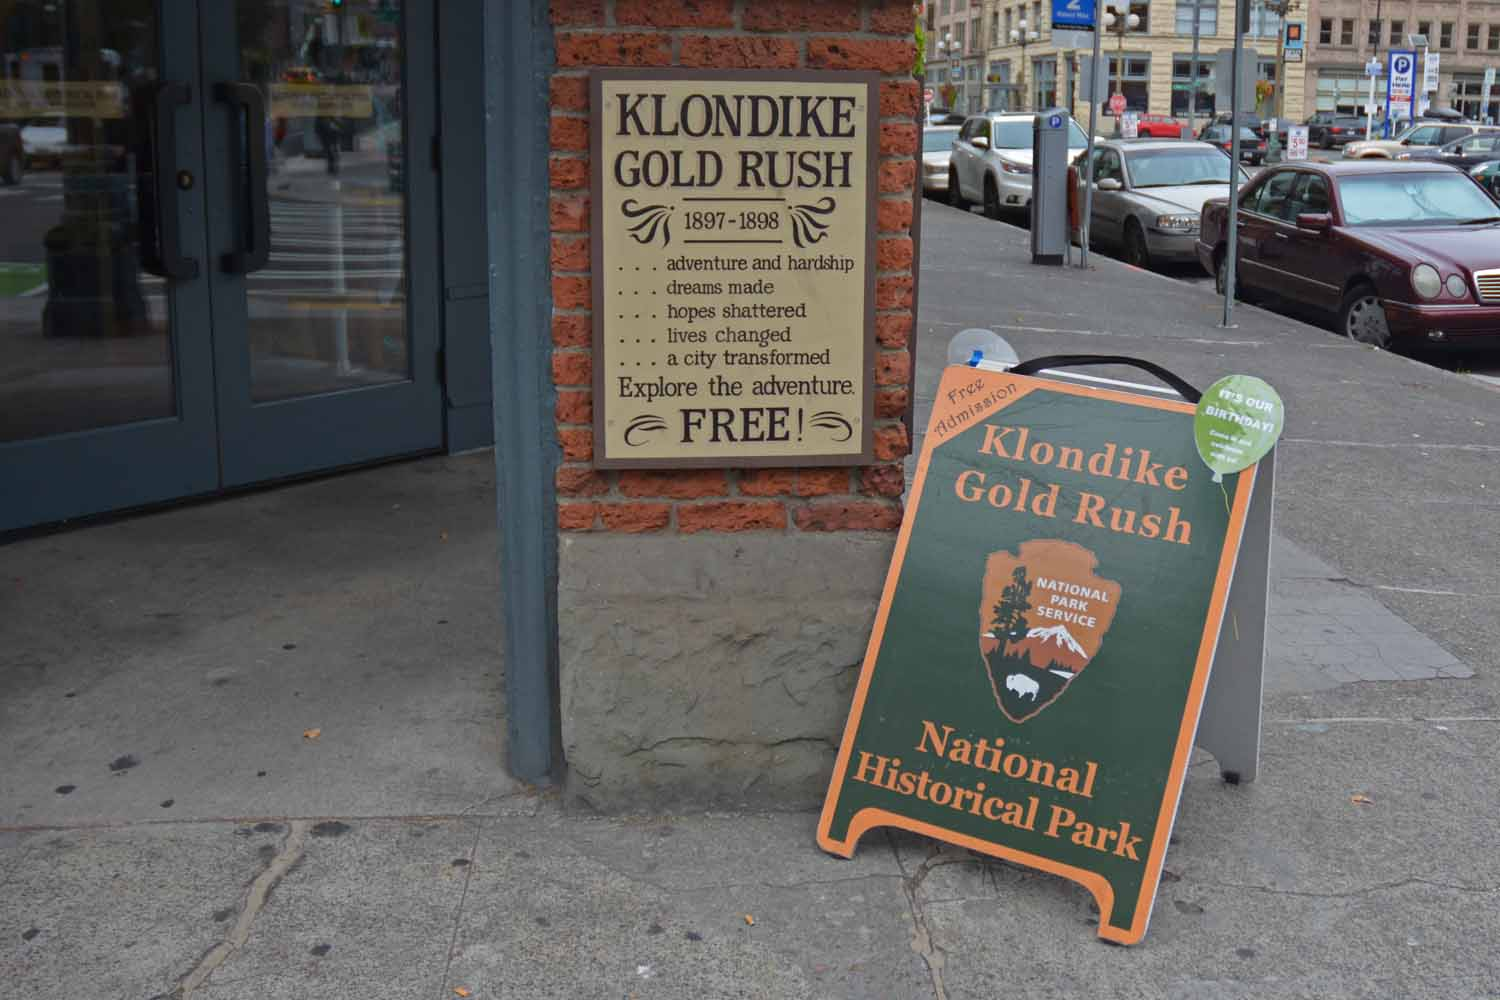 There is a National Park downtown.  It features the Klondike Gold Rush.  Since we had seen and heard the Alaska and Yukon story had to check out the Washington side of this time periodl